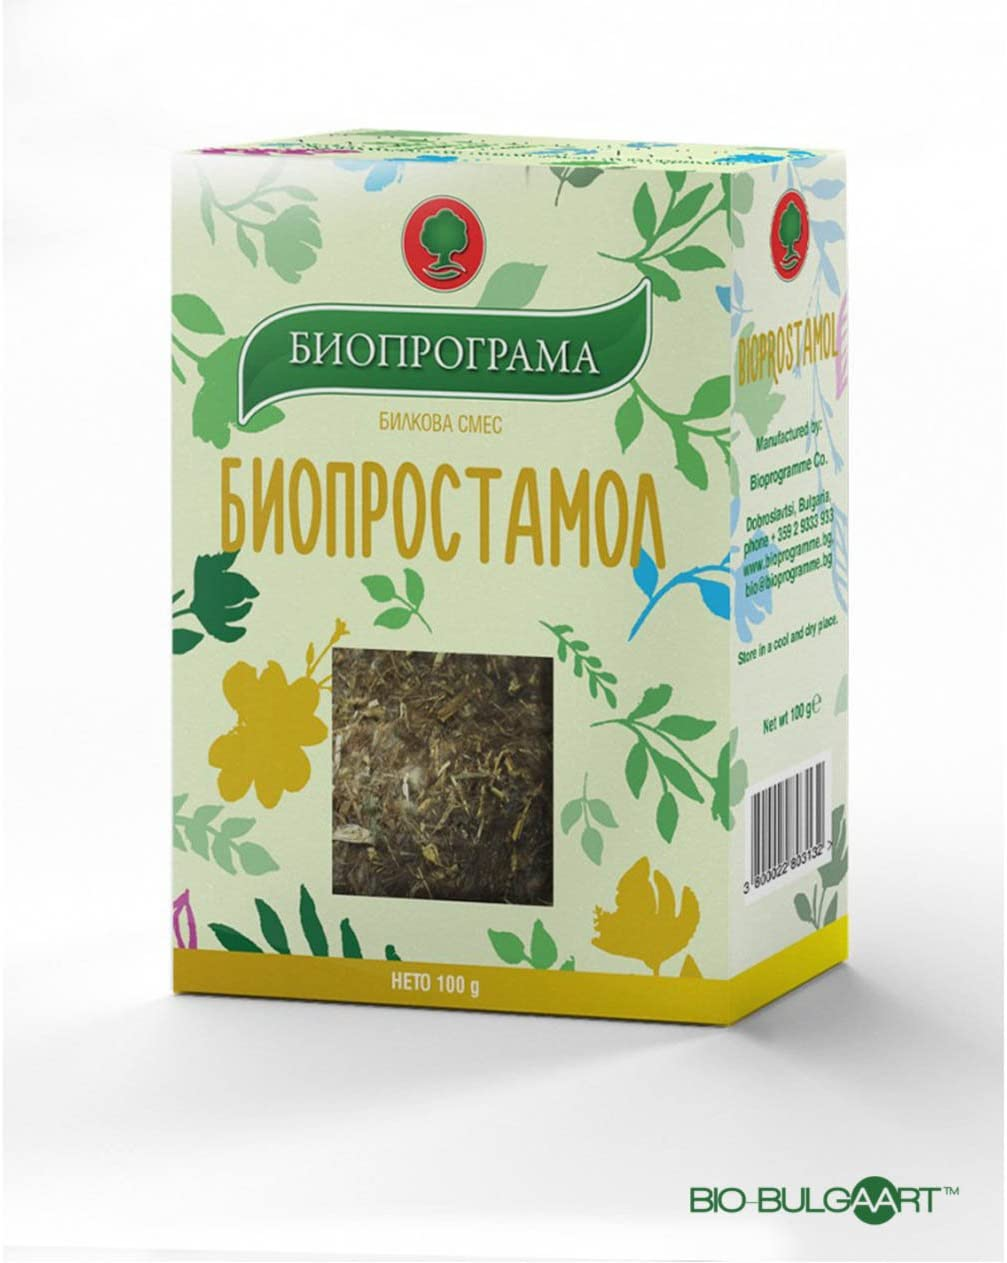 Bioprostamol Tea 100g |  Prostate Function Urination Loose Leaf